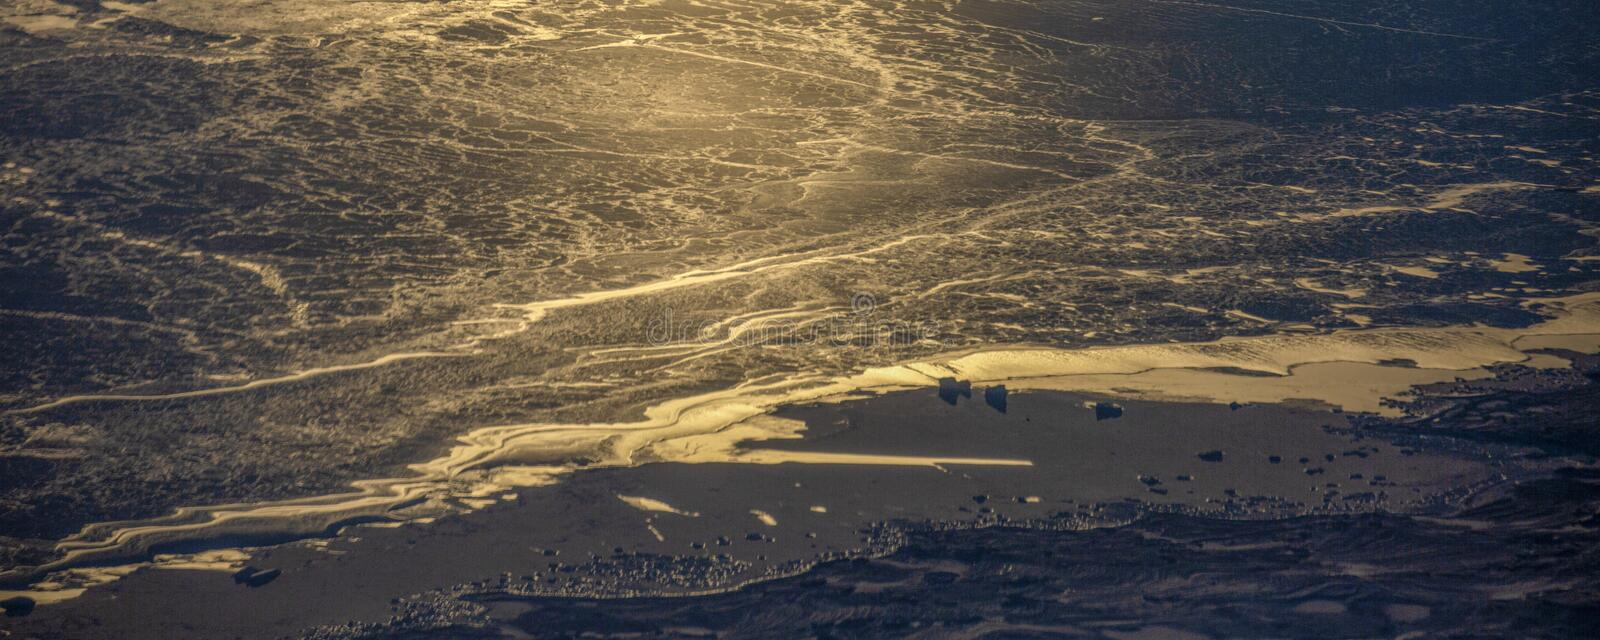 23Take an aerial view of the ice and sunrise over the bering strait.(1). The bering strait is located in the high latitudes, cold weather, many storms royalty free stock photos